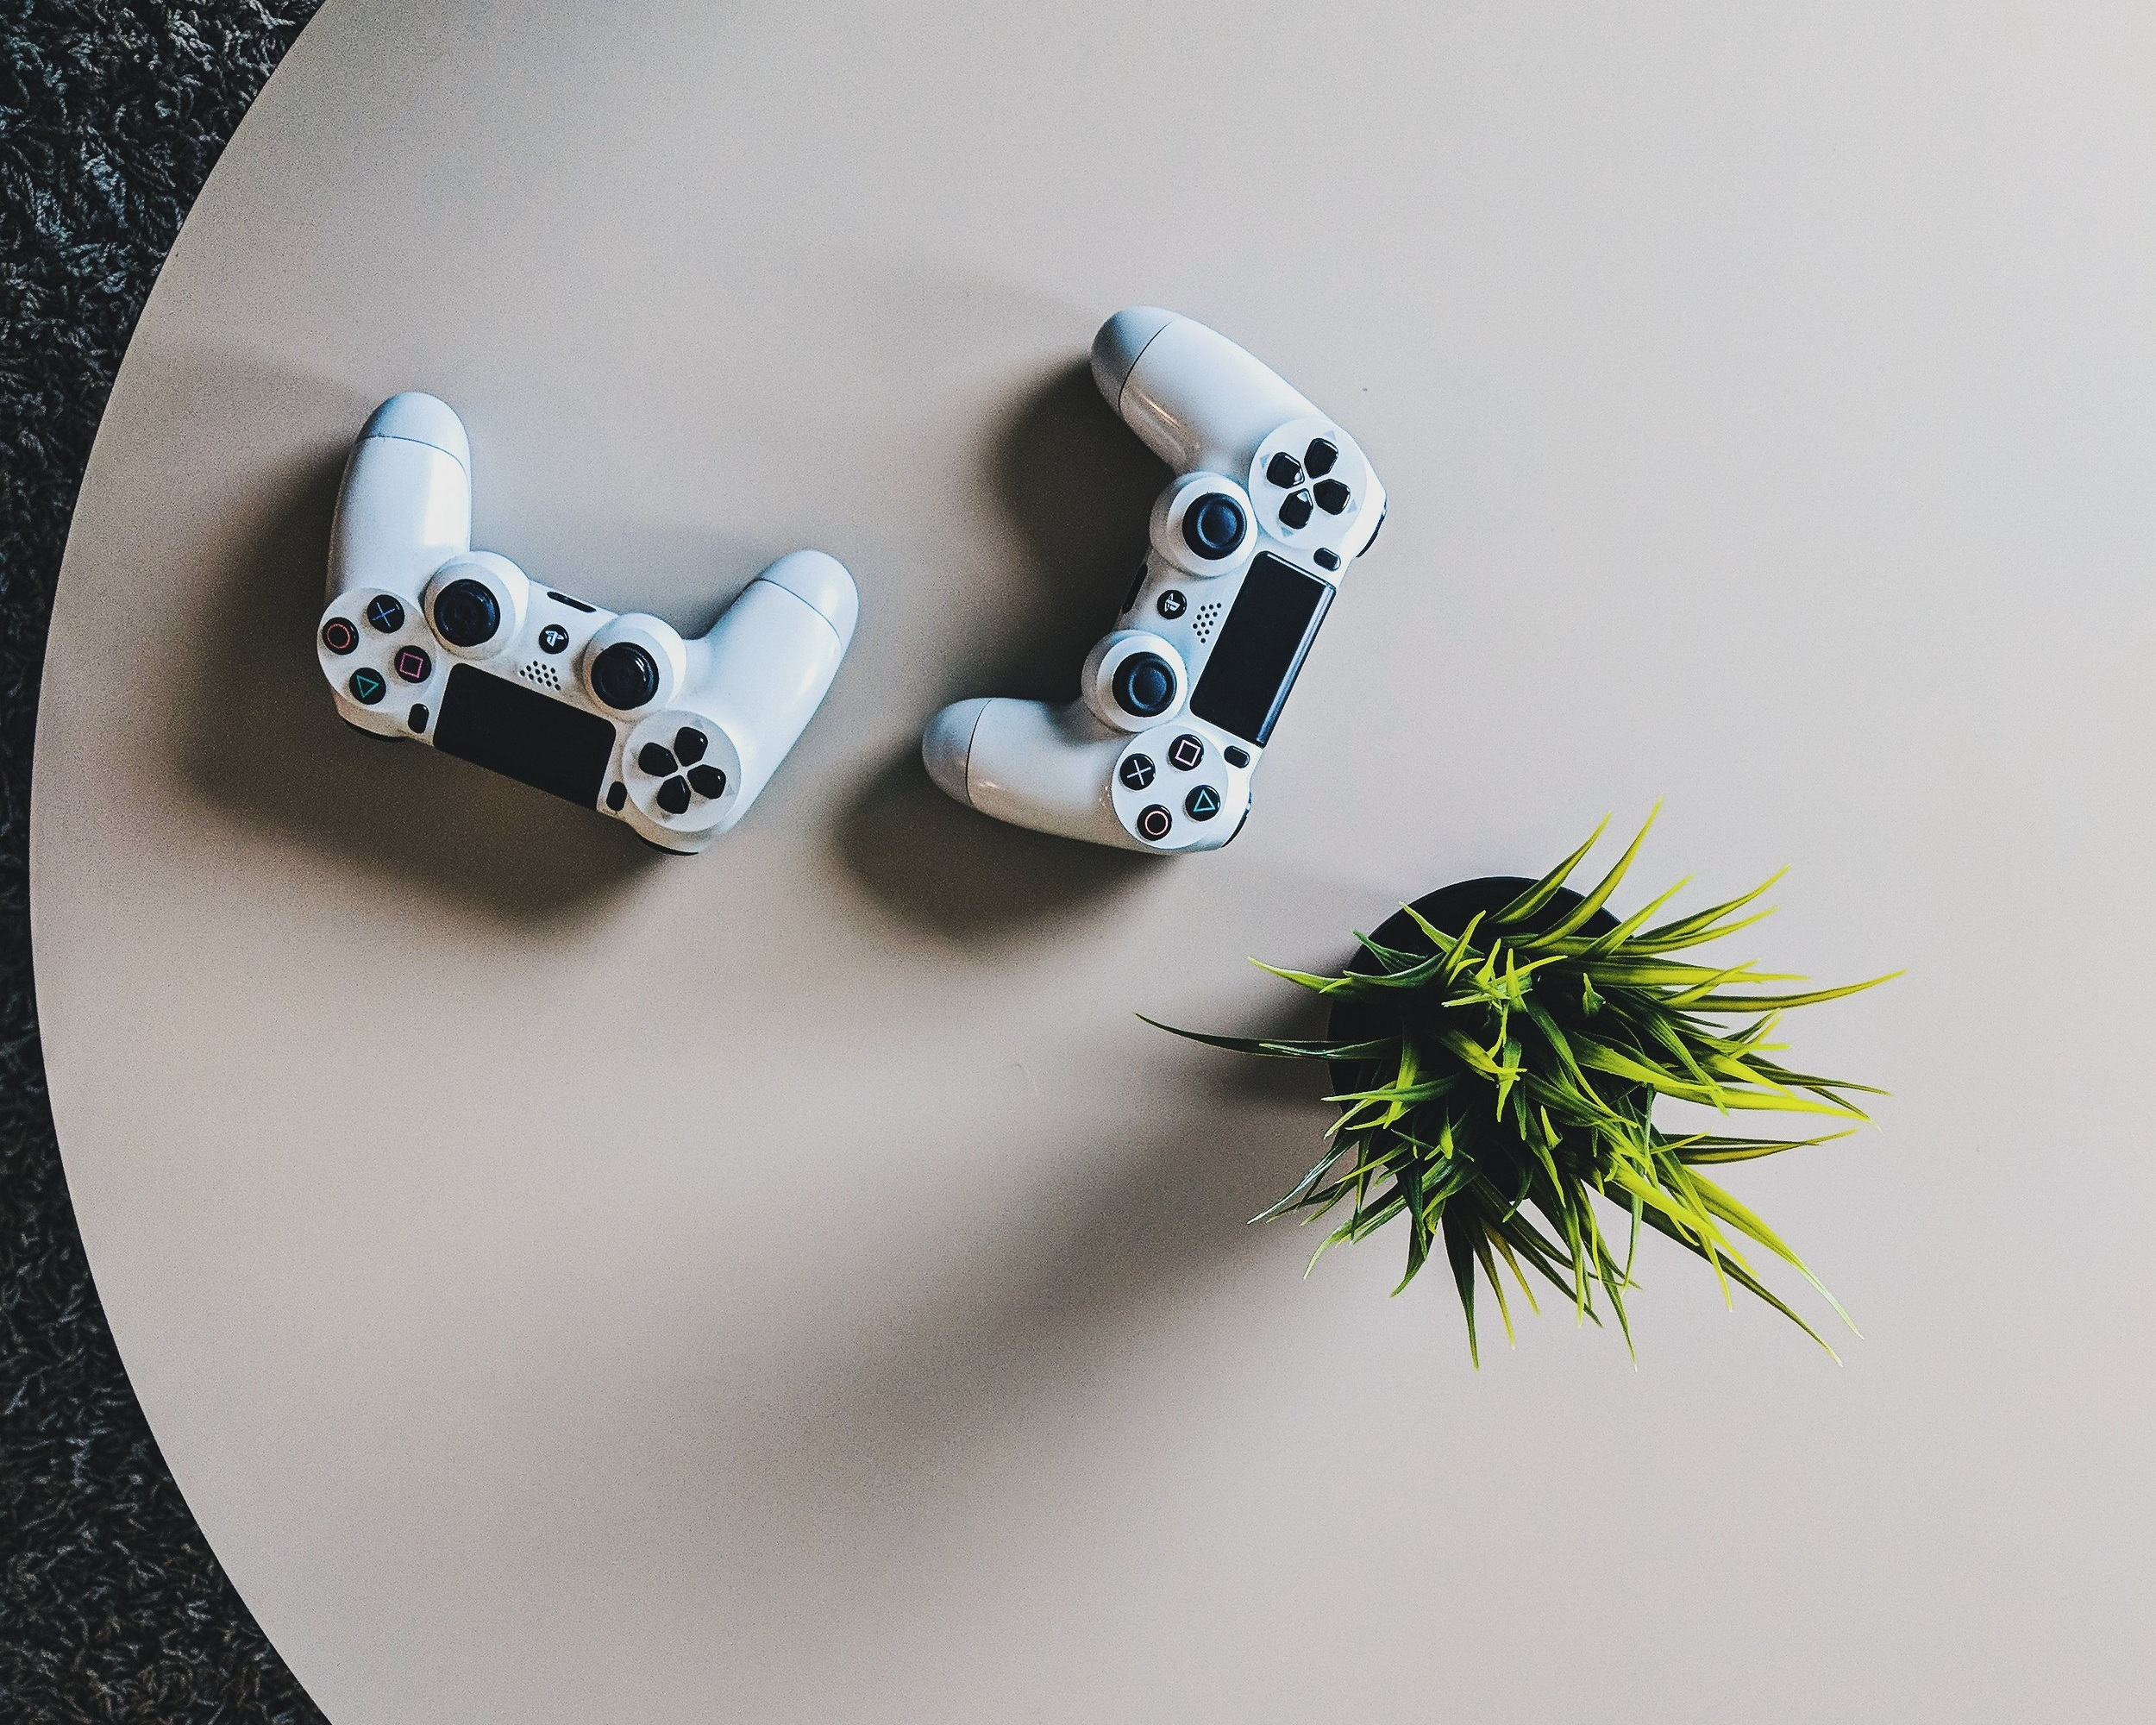 Therapy for gender dysphoria using video games and LGBT representation. Vered Counseling operates in Texas and North Carolina.